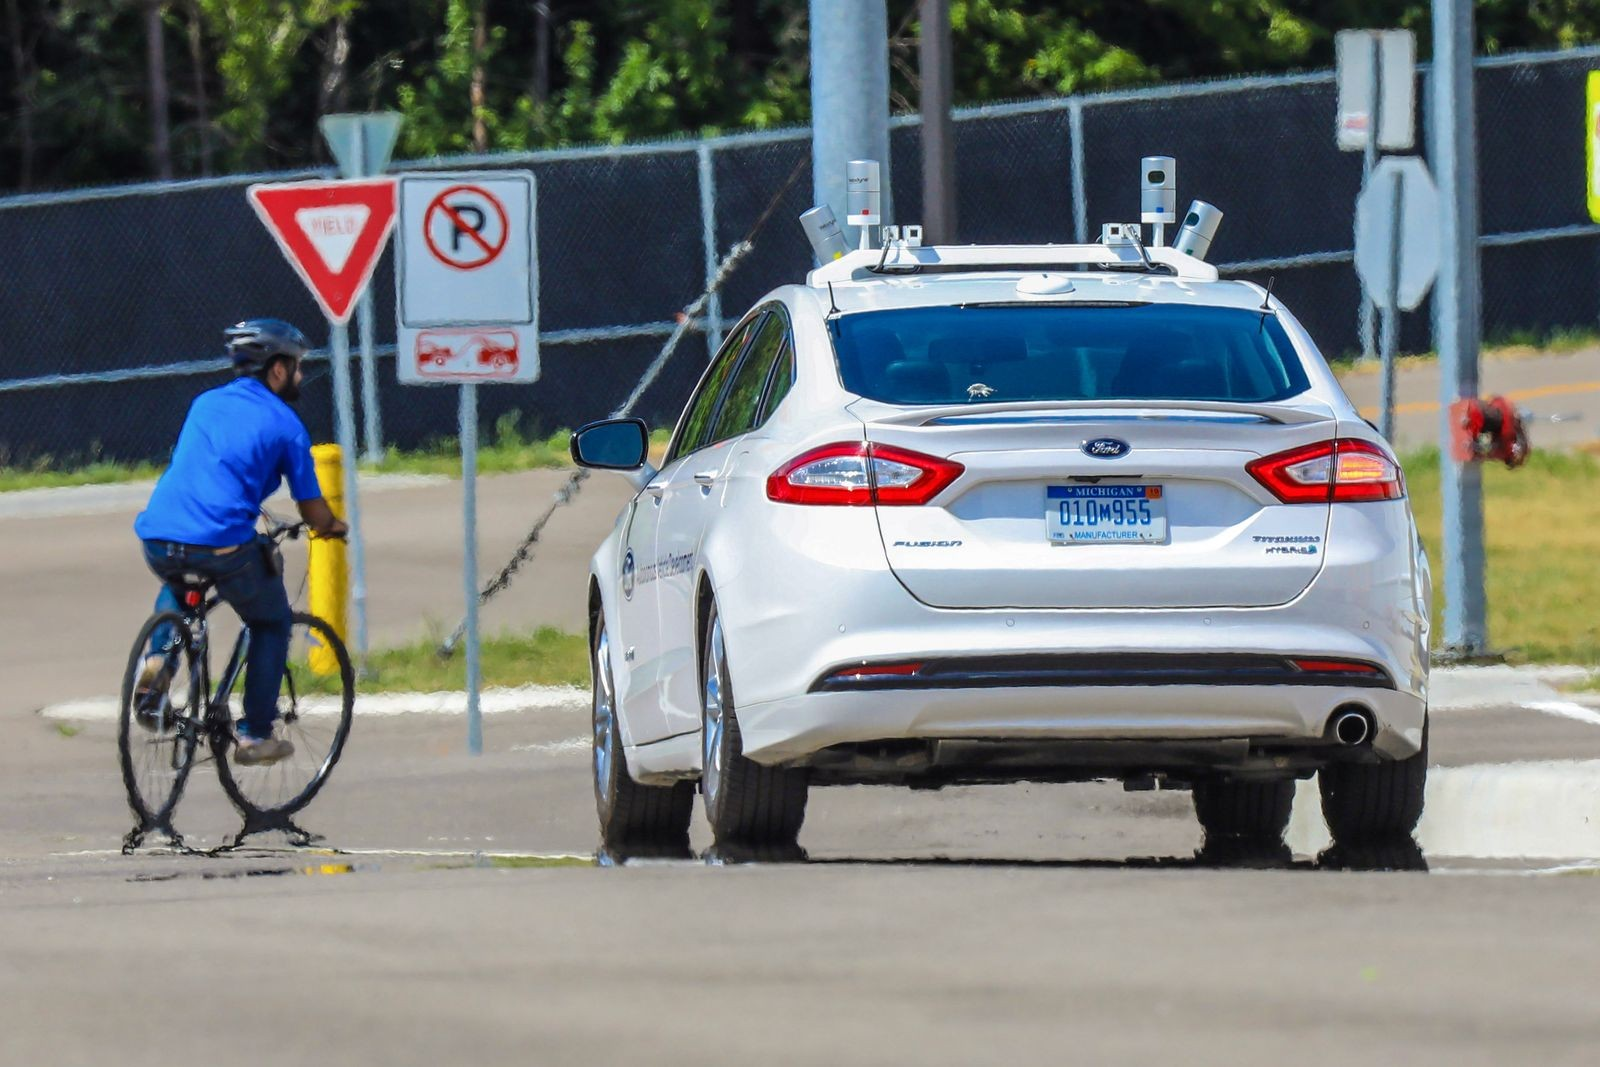 Autonomous Vehicle Testing at Mcity